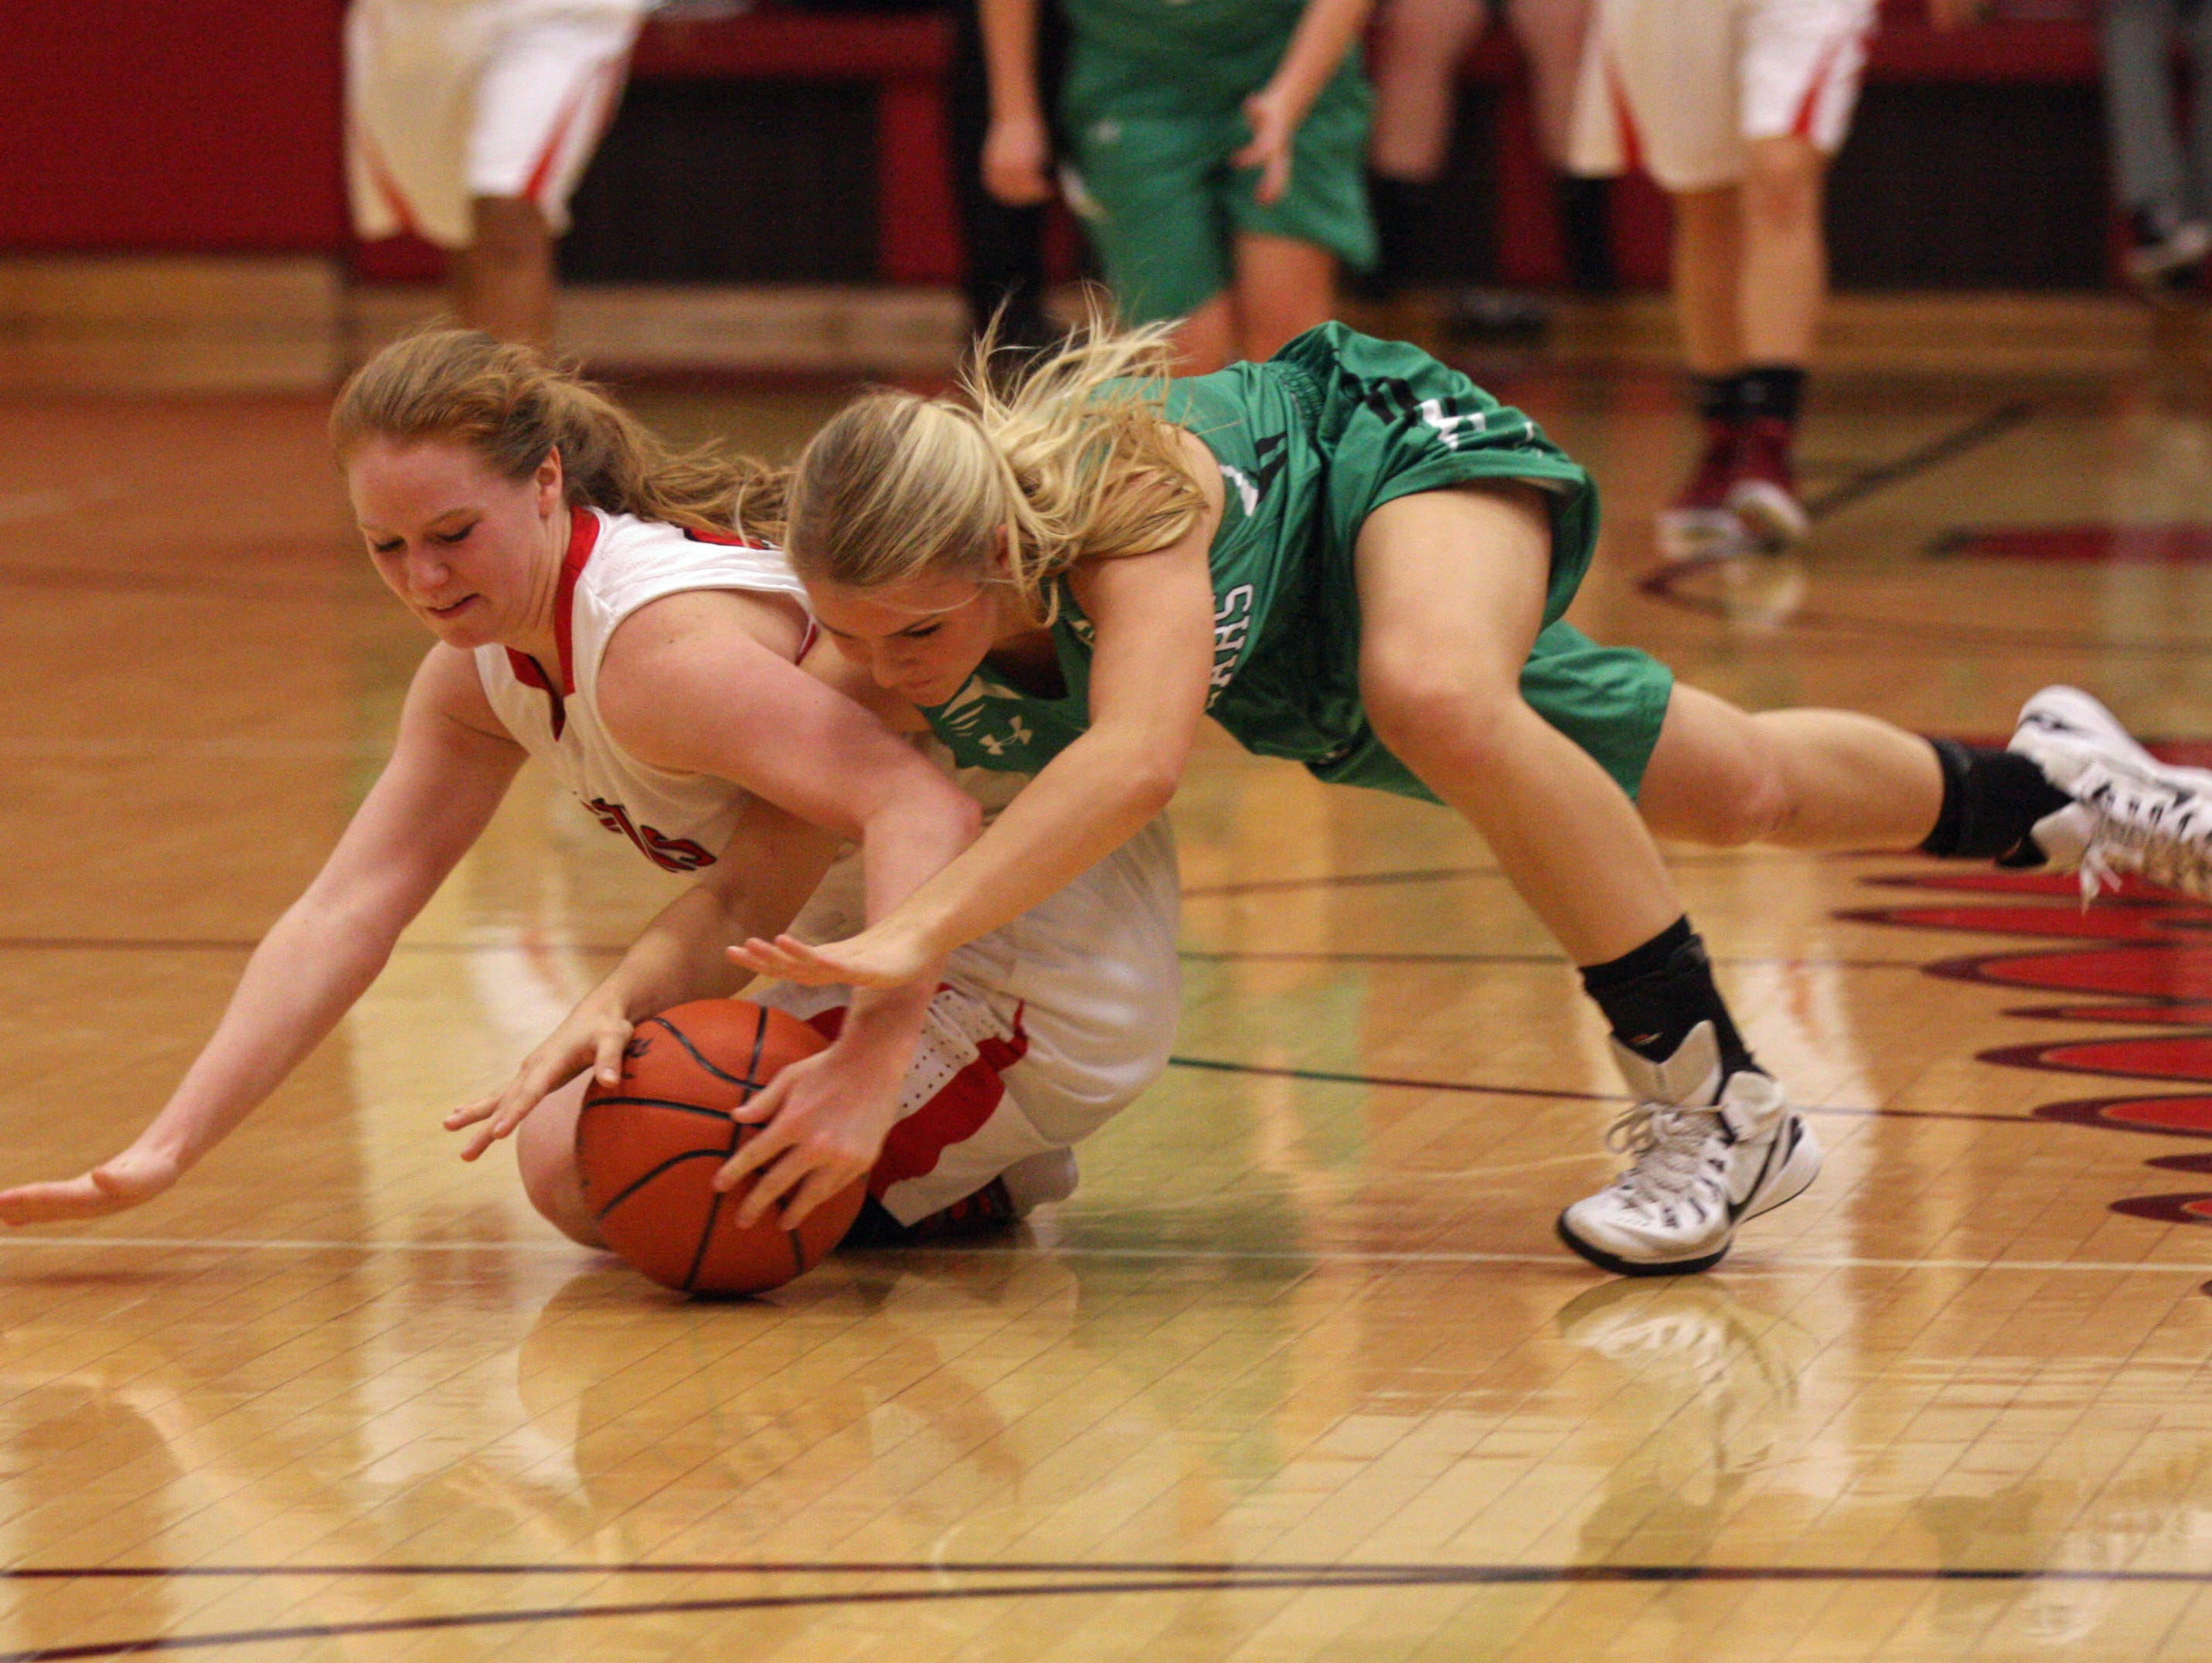 Port Clinton's Marissa Day and Margaretta's Kristen Yost fight for a loose ball Wednesday at Port Clinton.